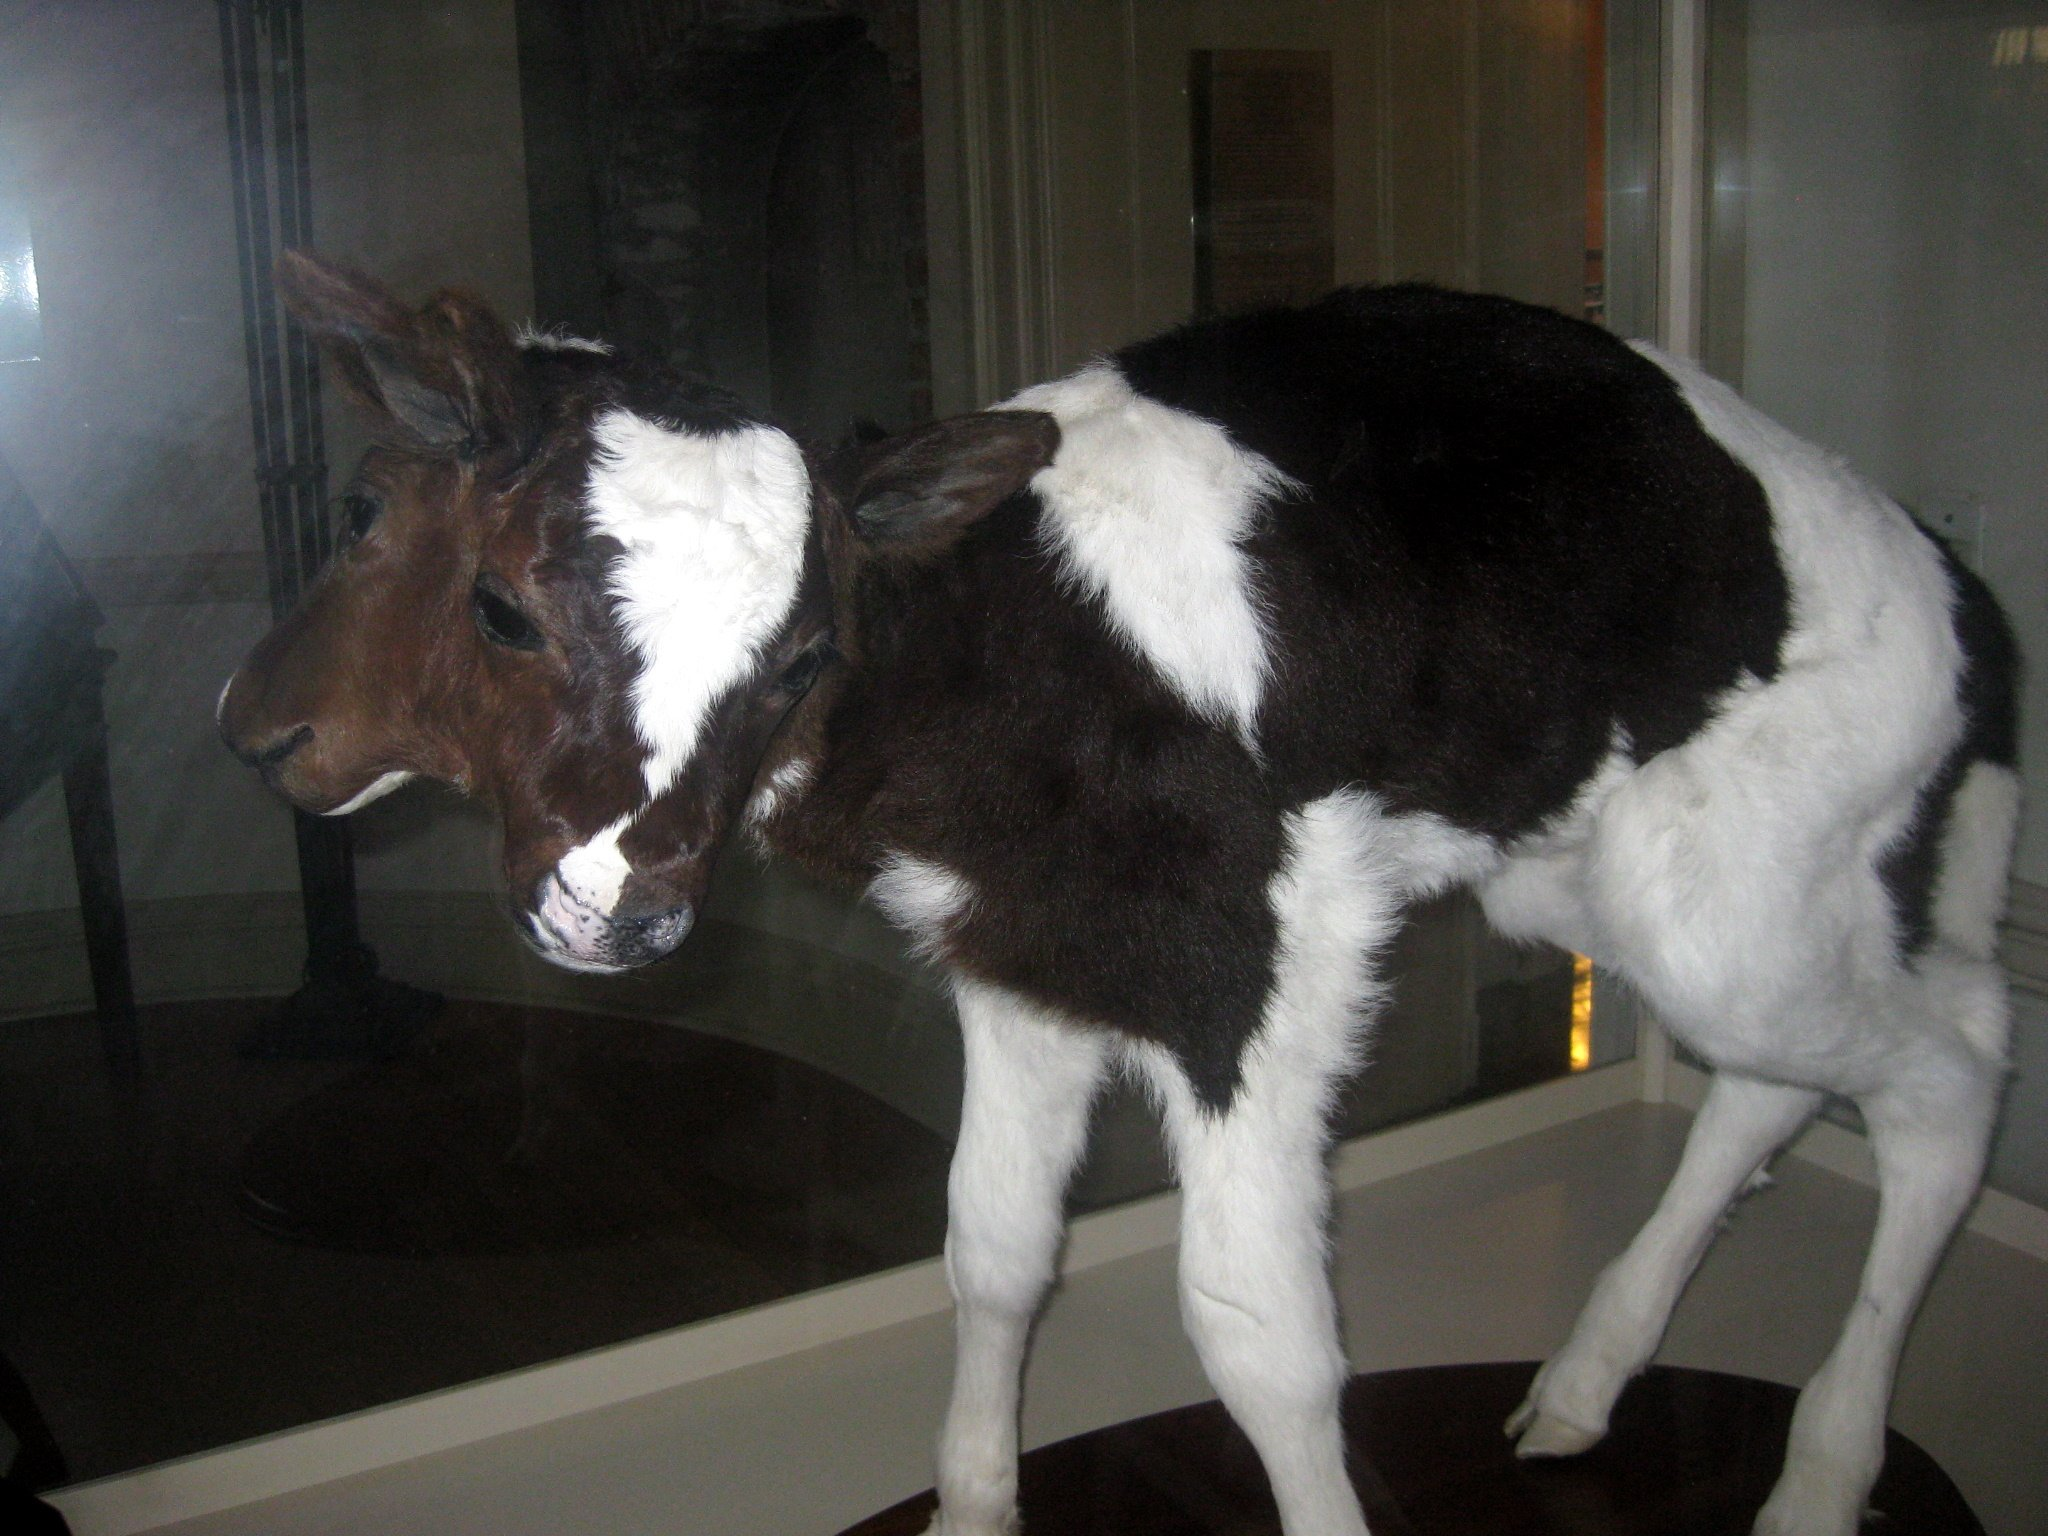 The celebrated two-headed calf itself (or themselves).